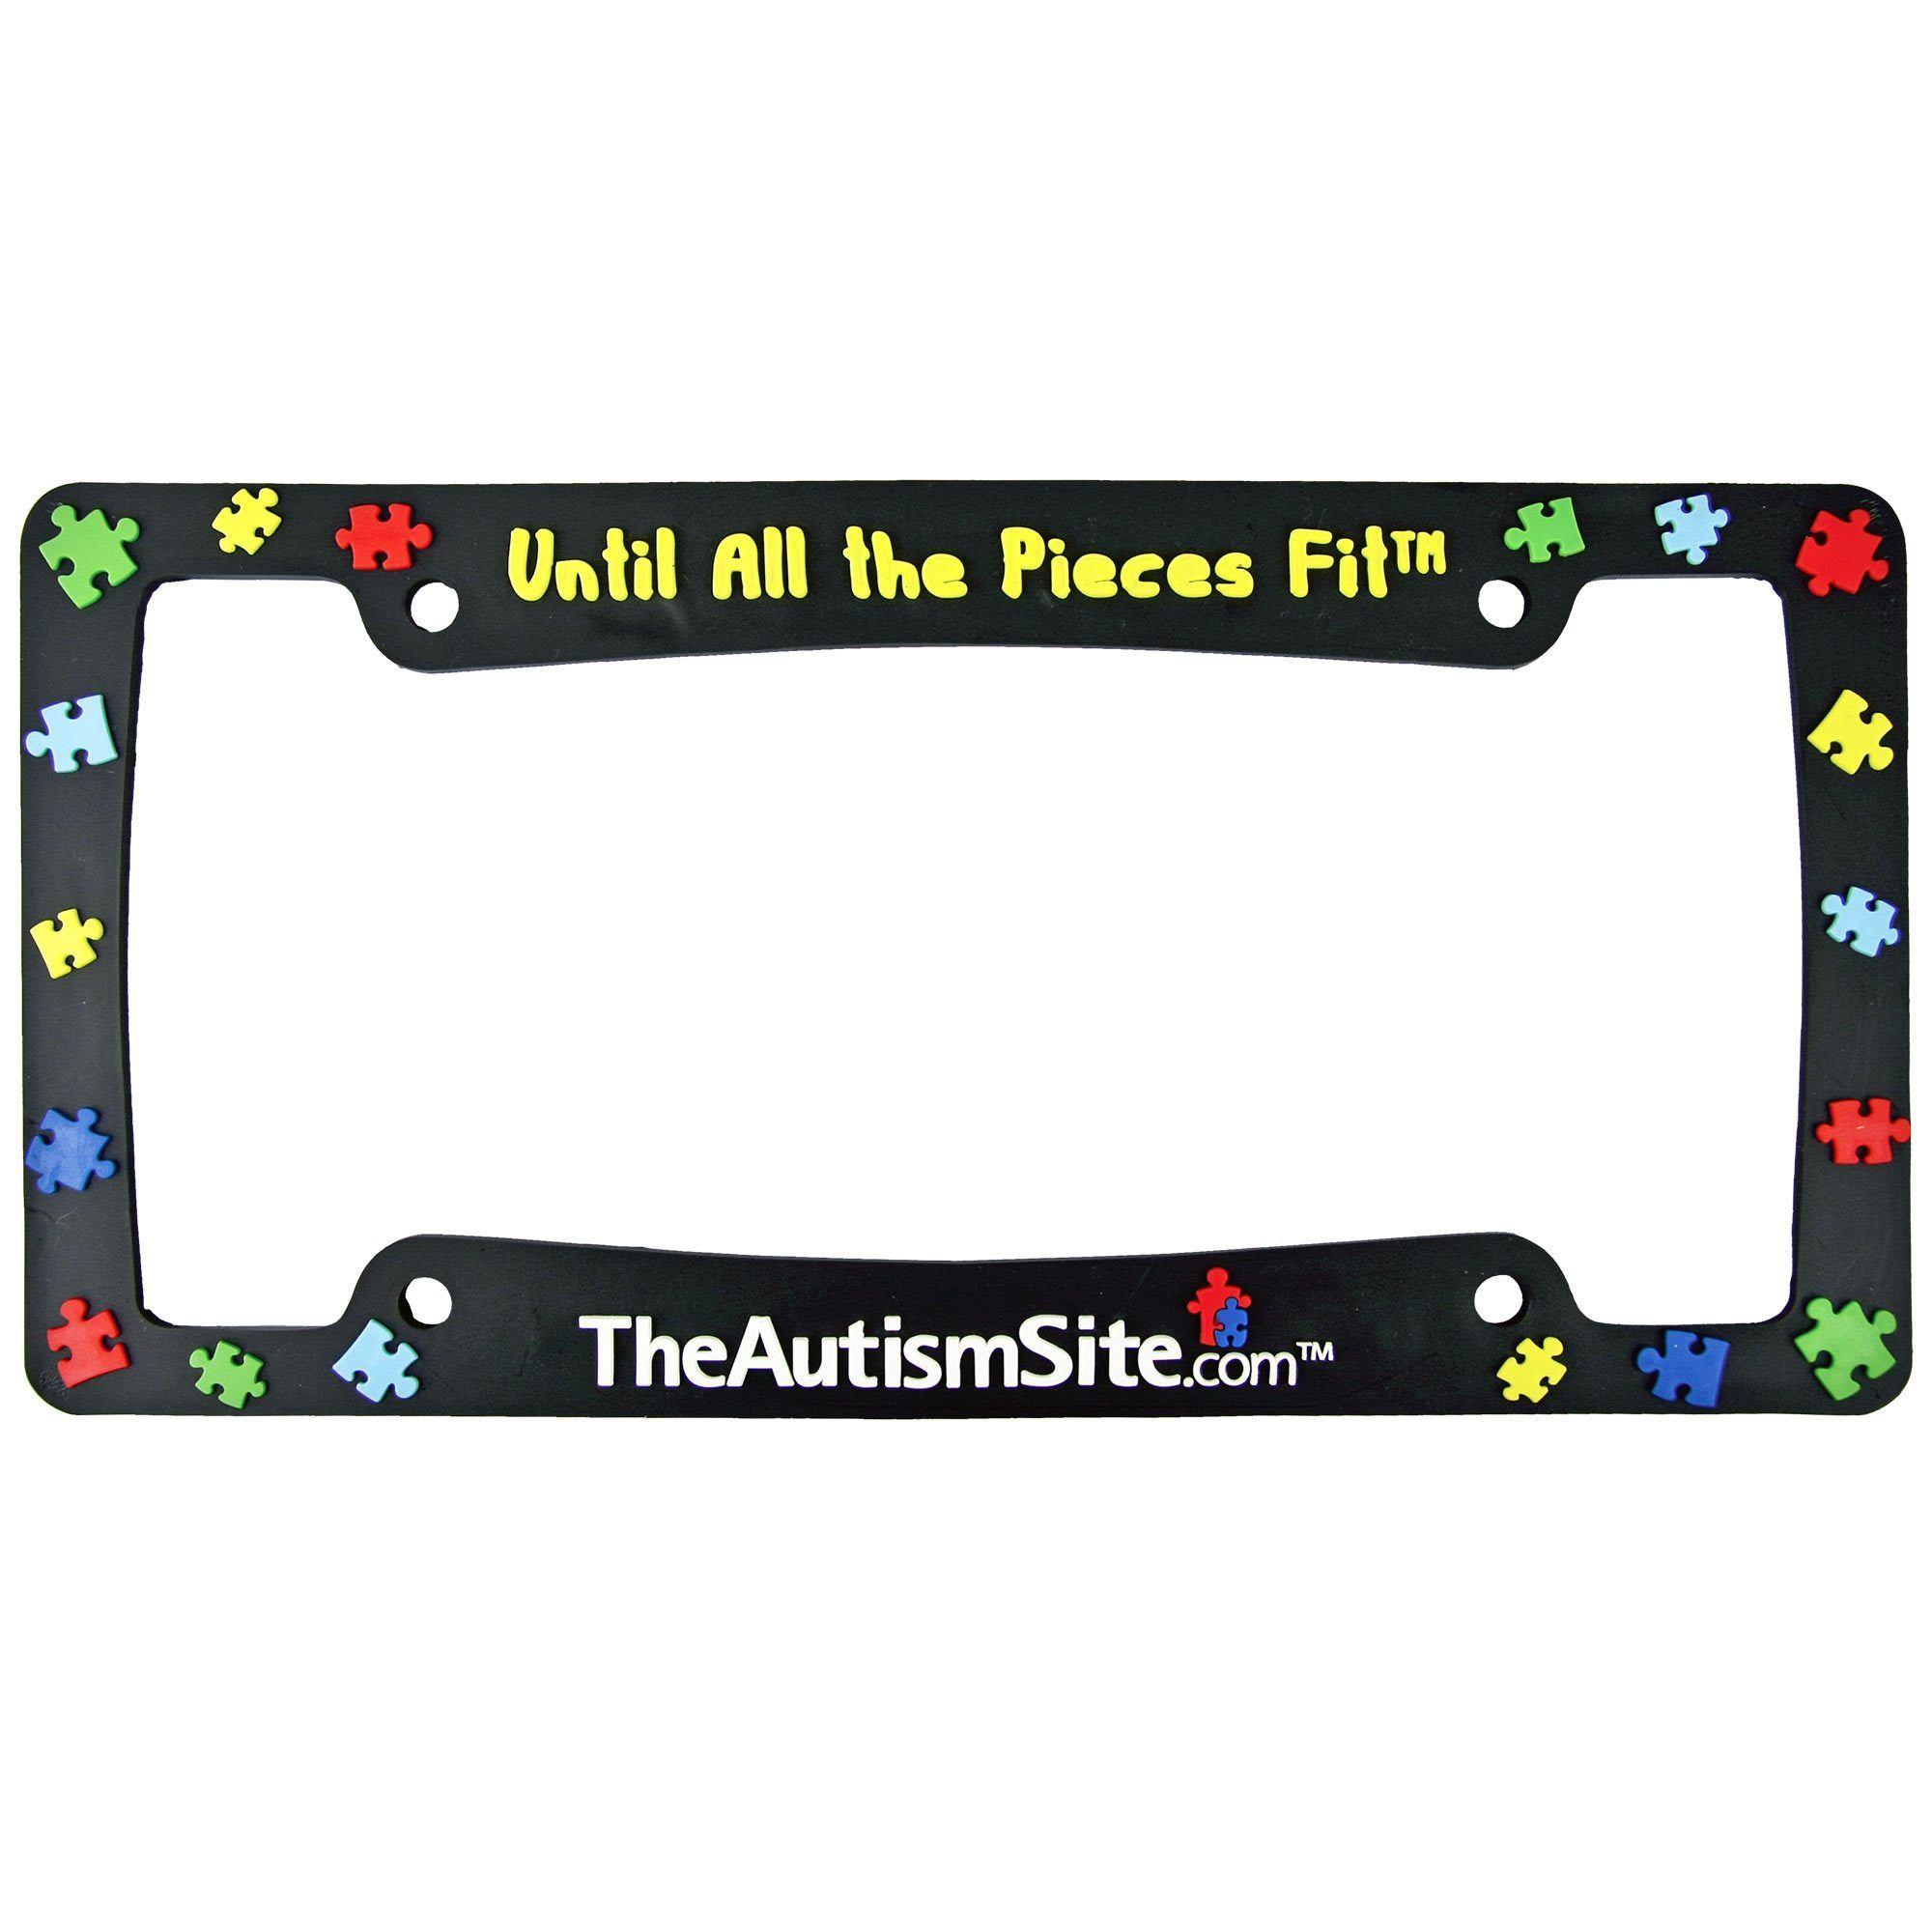 Until All The Pieces Fit™ License Plate Frame – GreaterGood